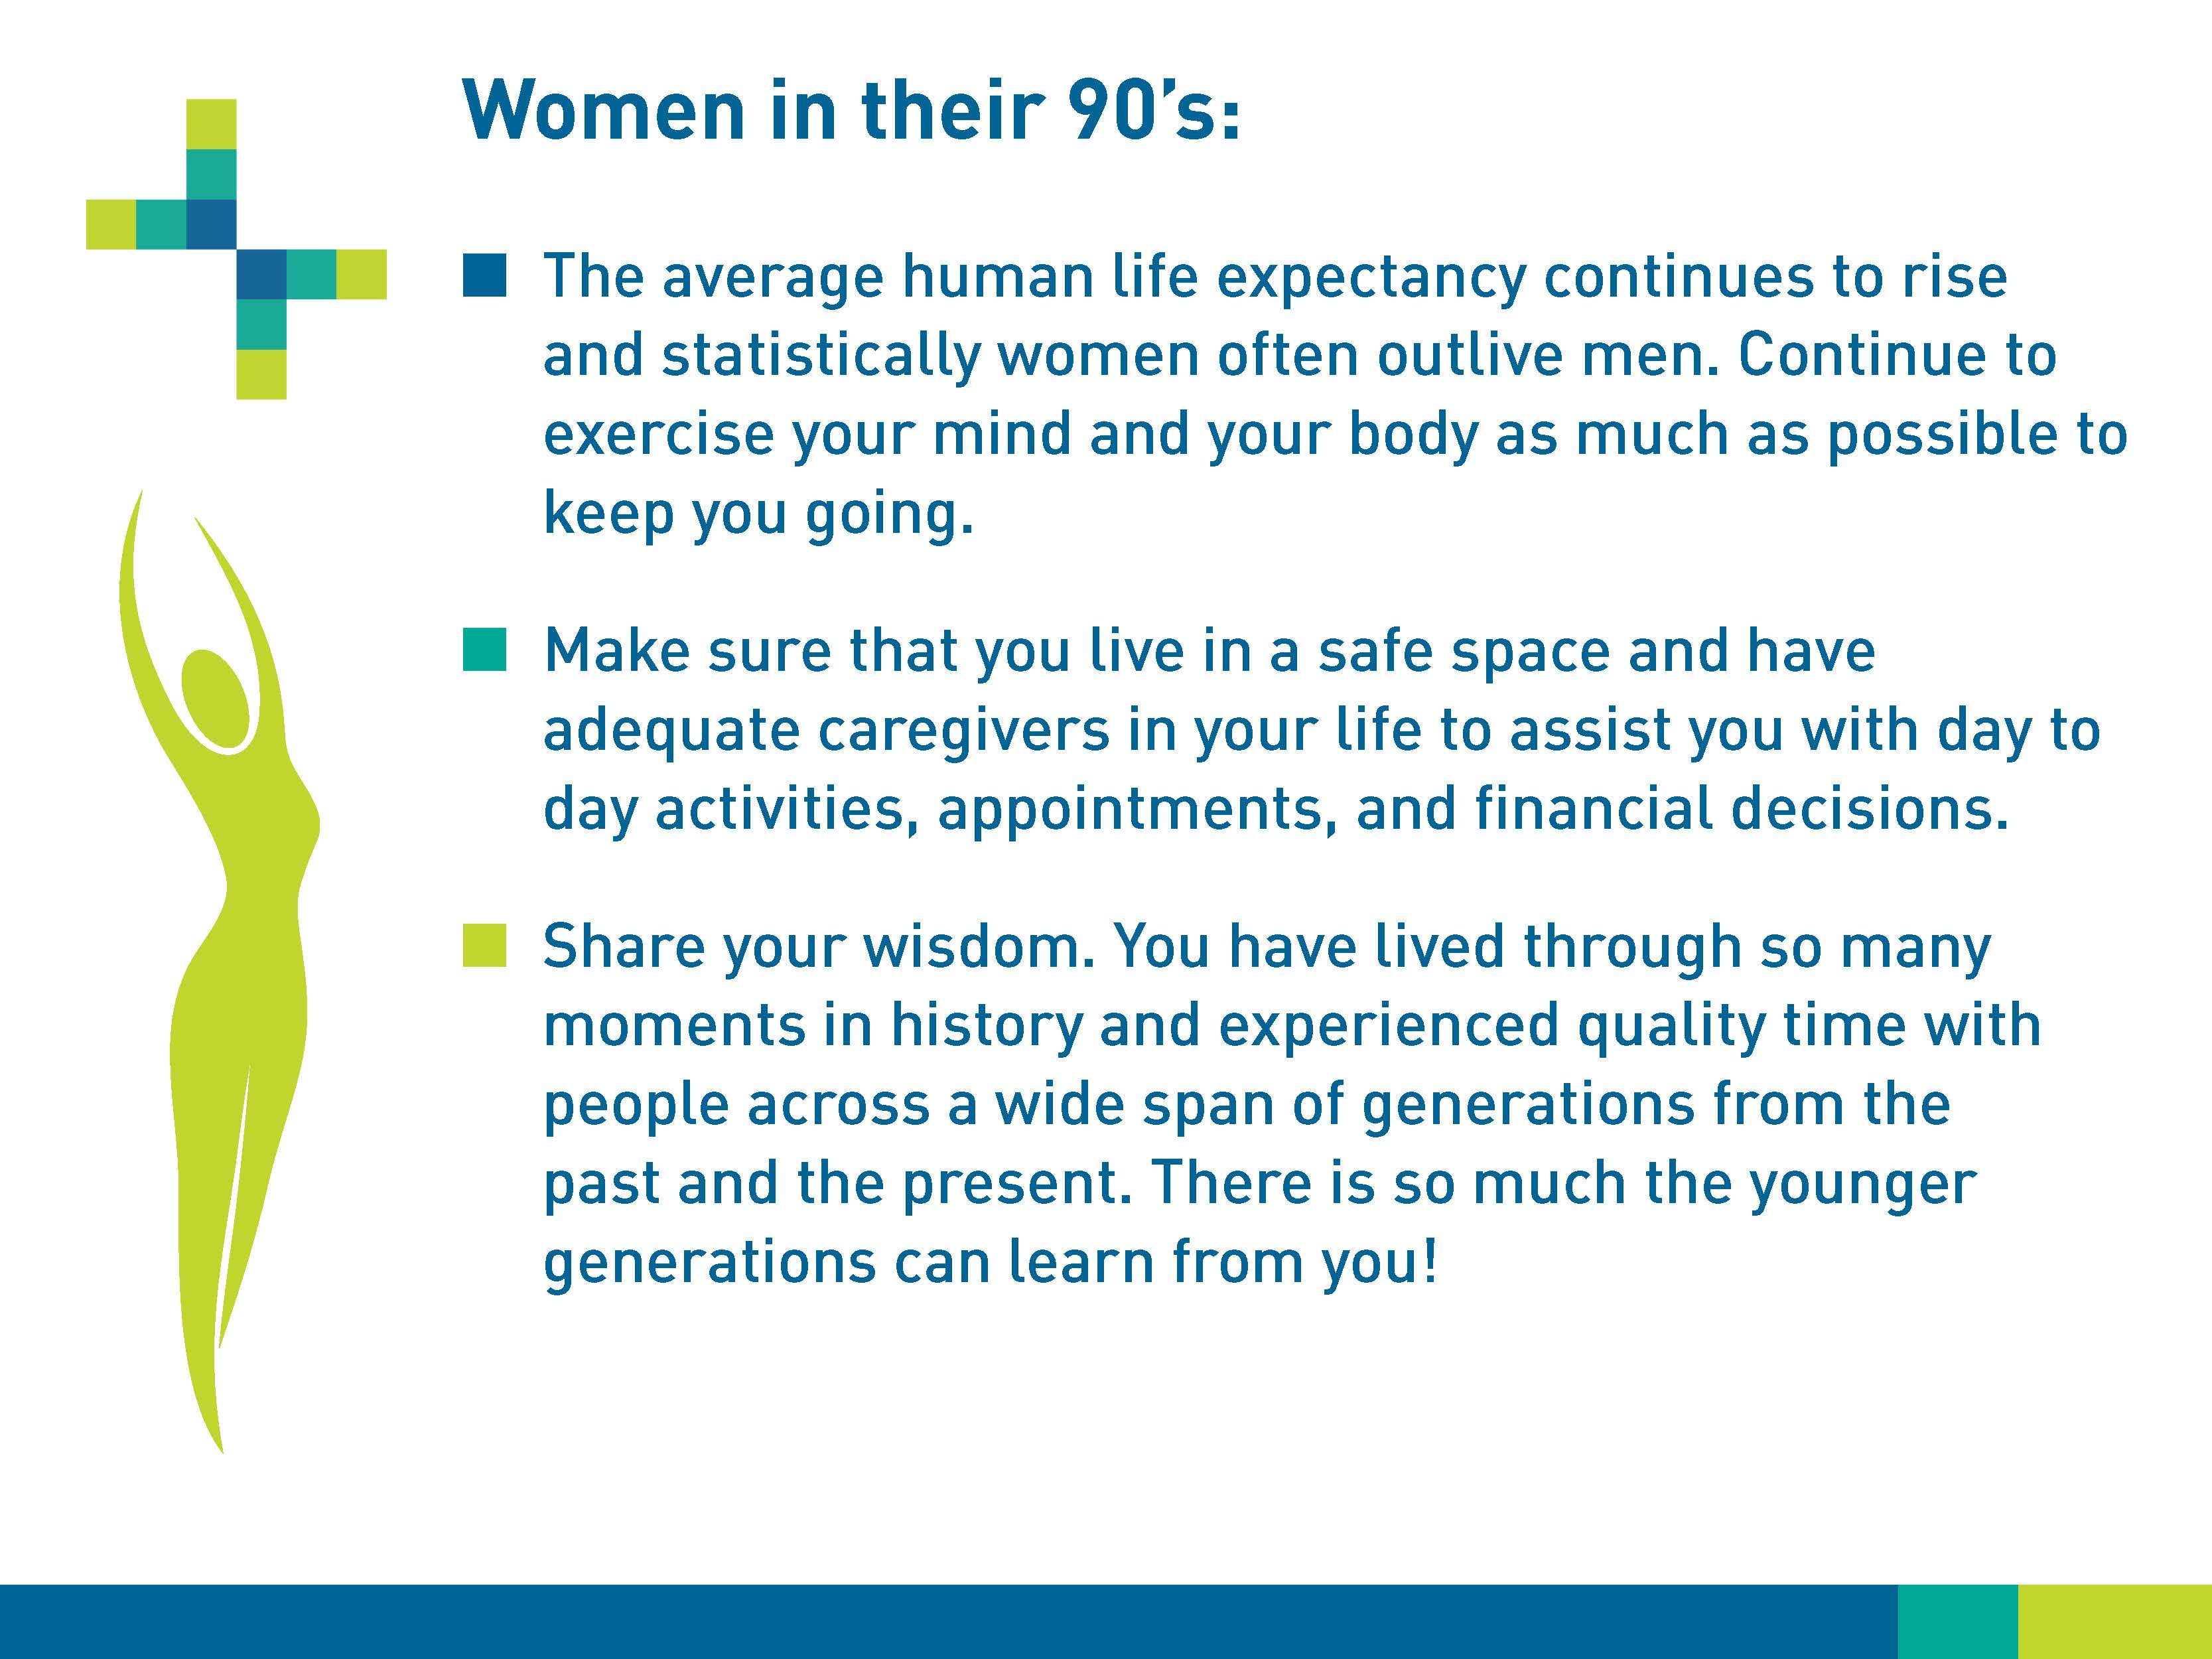 Women in their 90s: The average human life expectancy continues to rise and statistically women often outlive men. Continue to exercise your mind and your body as much as possible to keep you going. Make sure that you live in a safe place and have adequate caregivers in your life to assist you with day to day activities, appointments, and financial decisions. Share your wisdom. You have lived through so many moments in history and experienced quality time with people across a wide span of generations from the past and the present. There is so much the younger generations can learn from you!